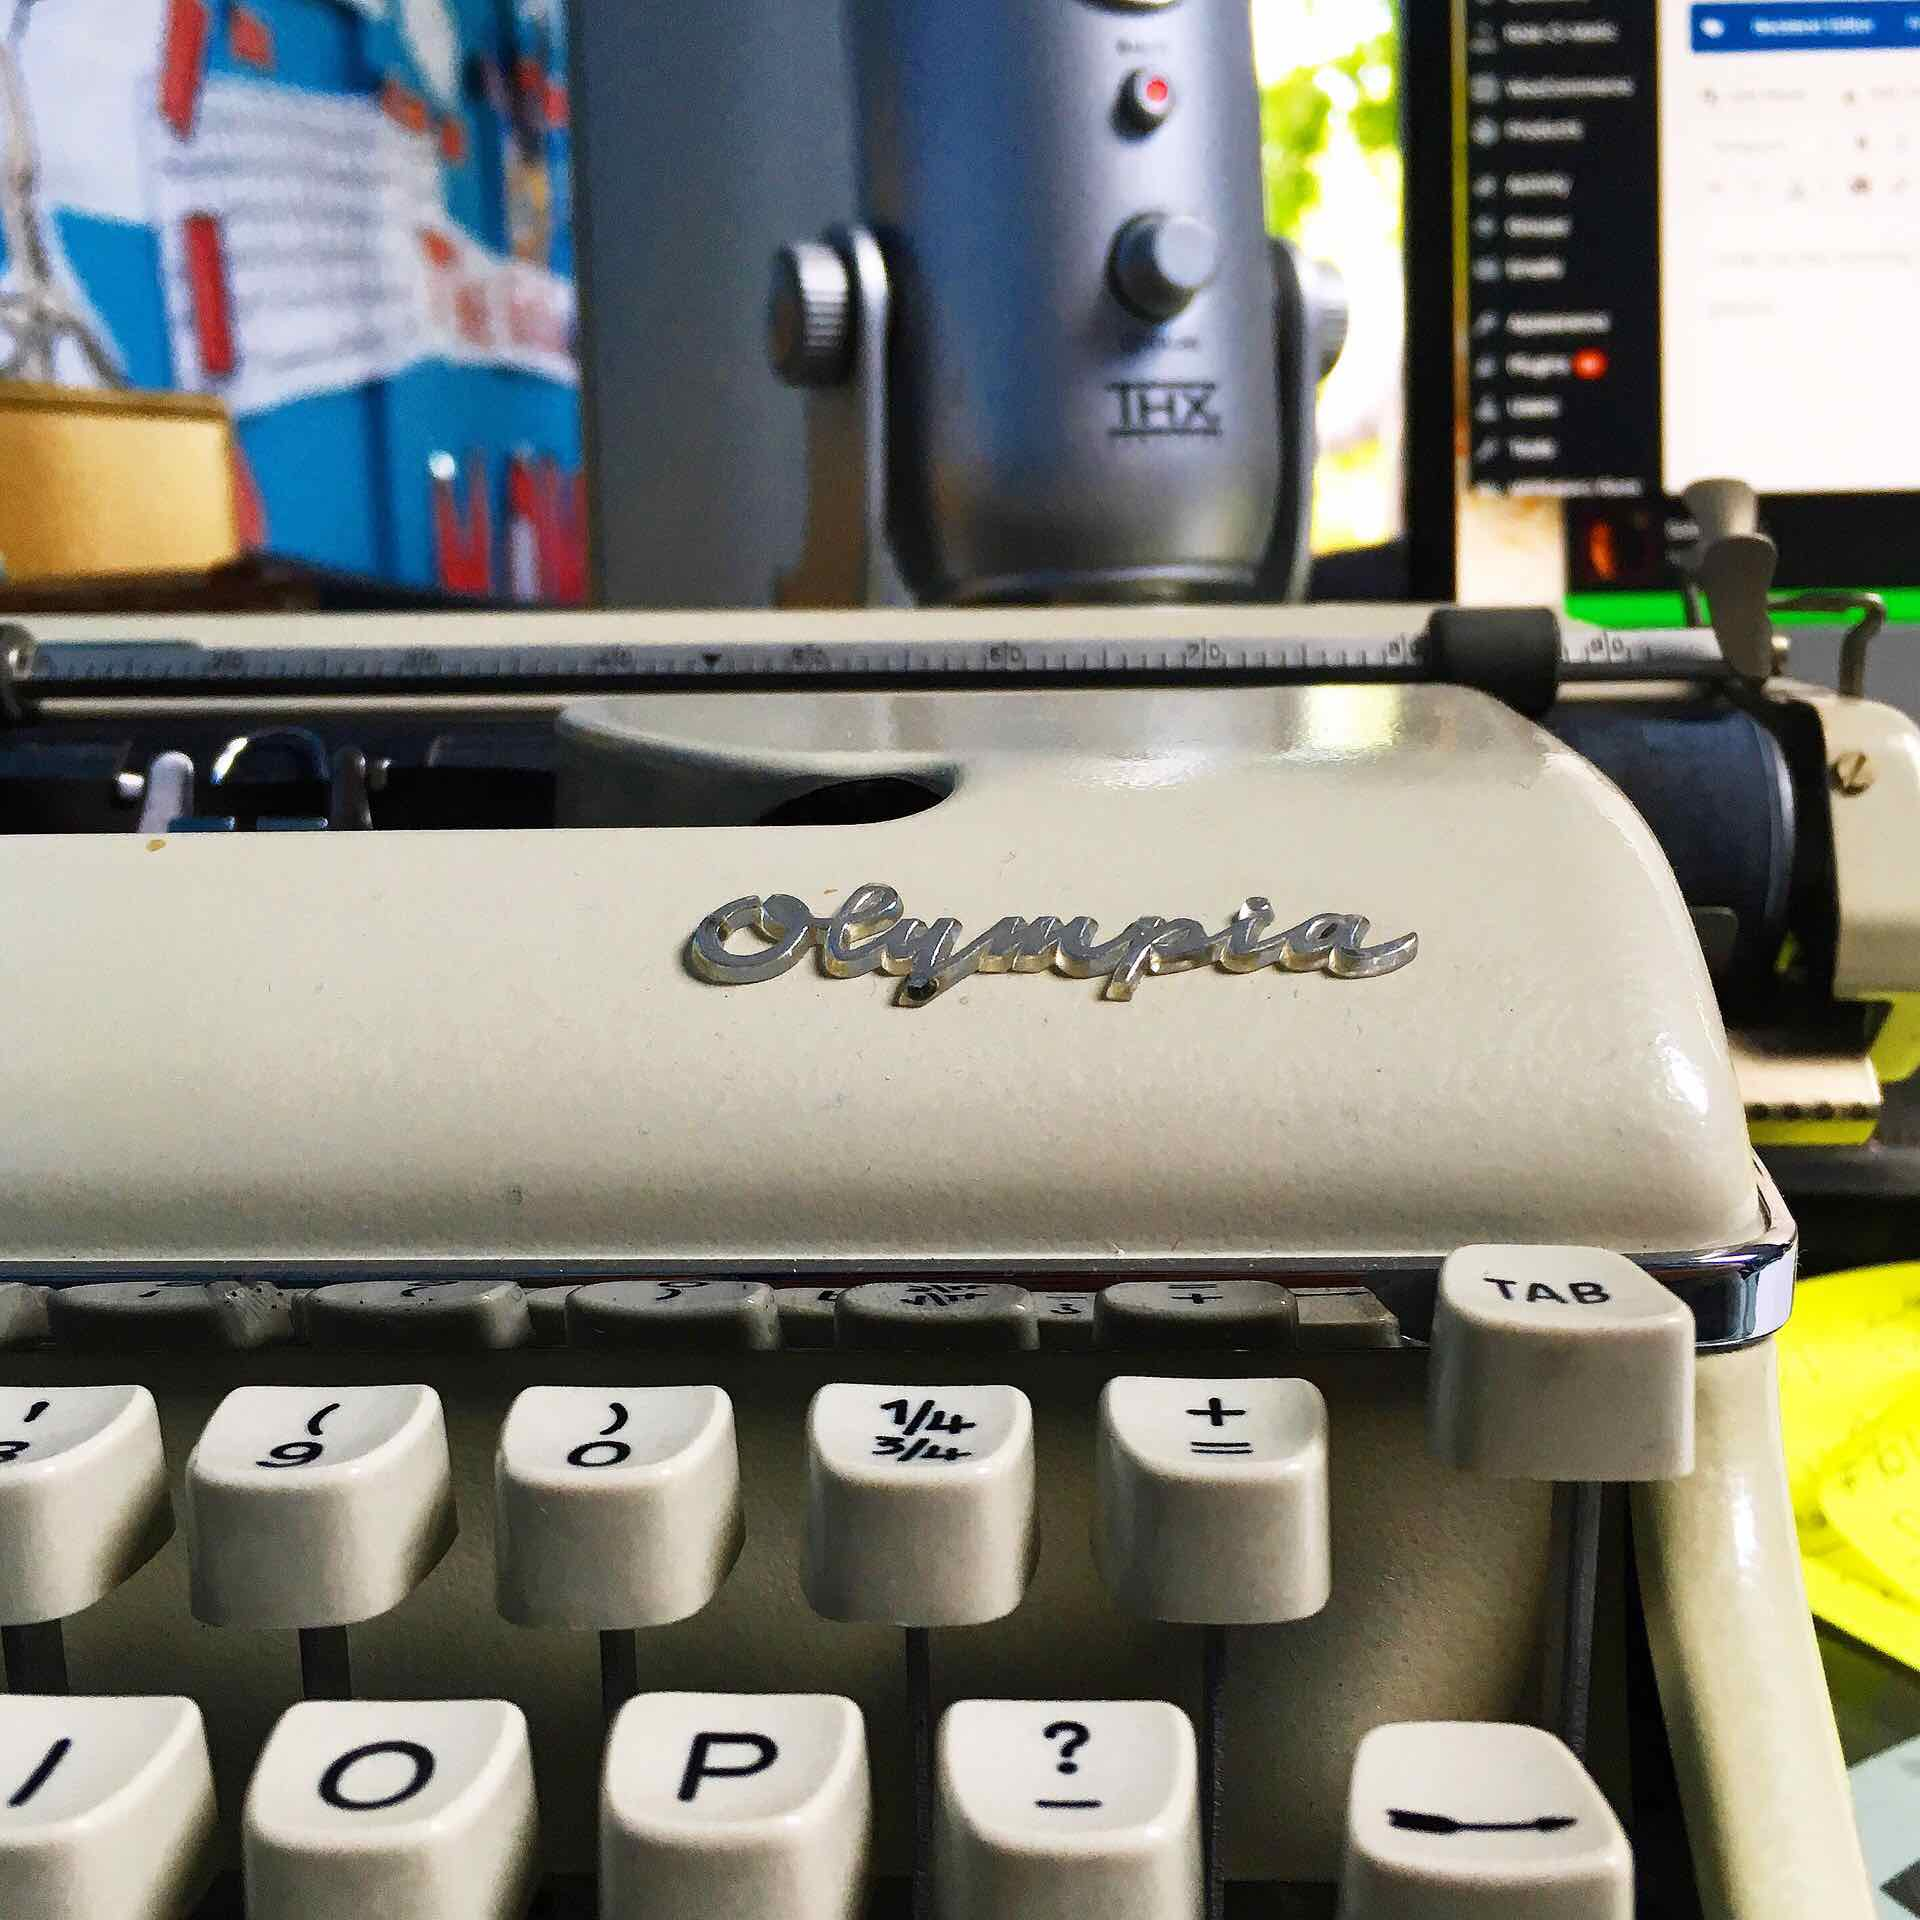 New typewriter